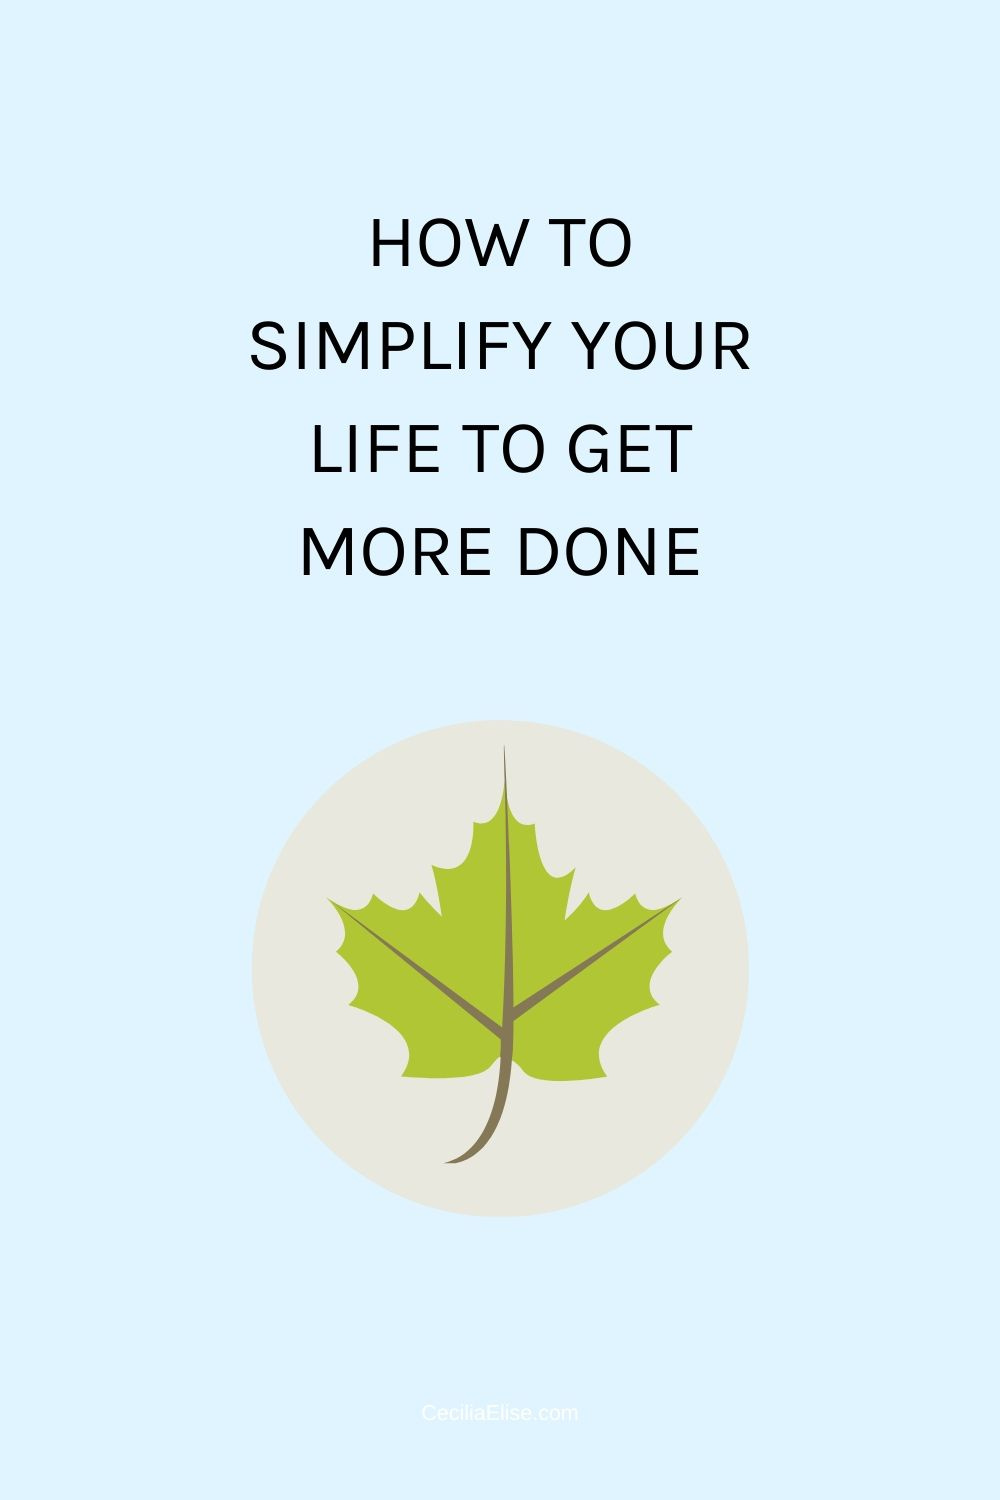 How to simplify your life to get more done